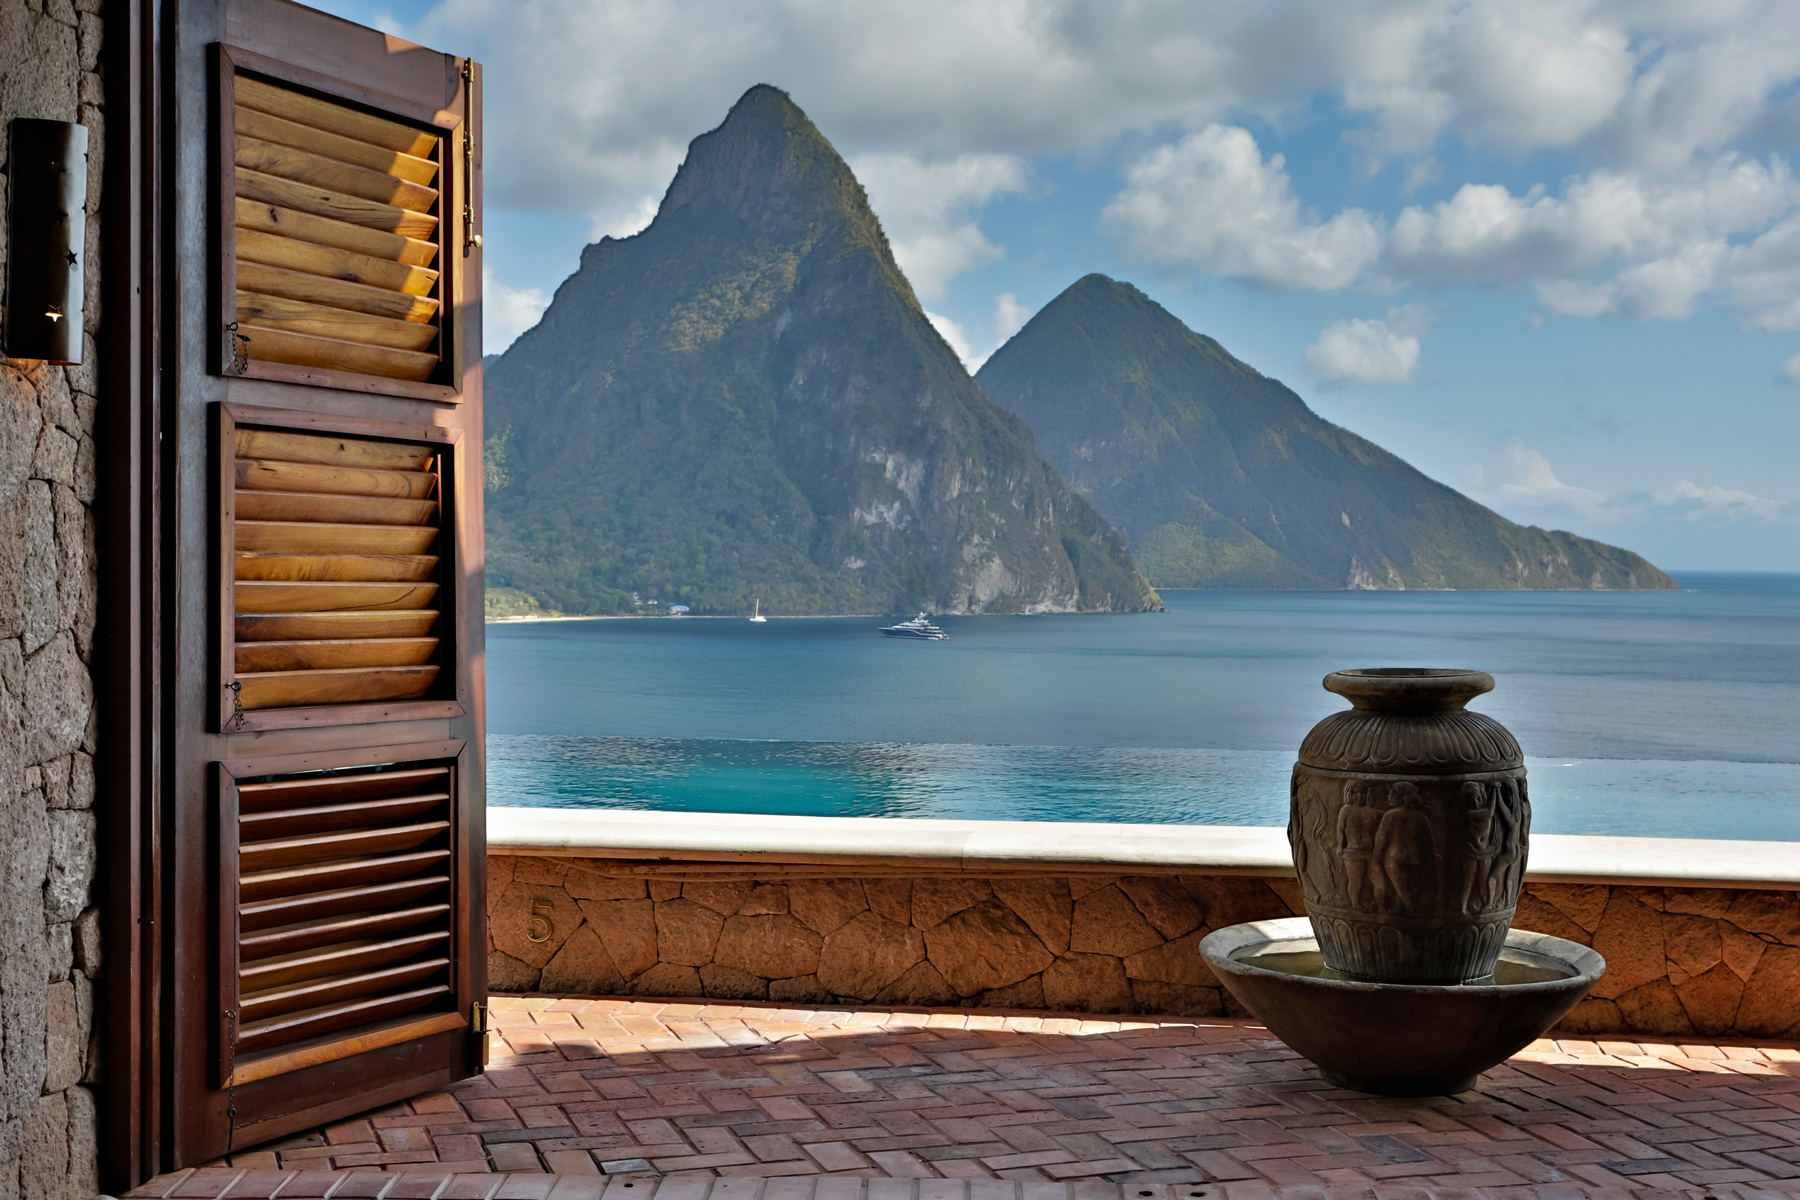 Tài Sản Bán Other St. Lucia